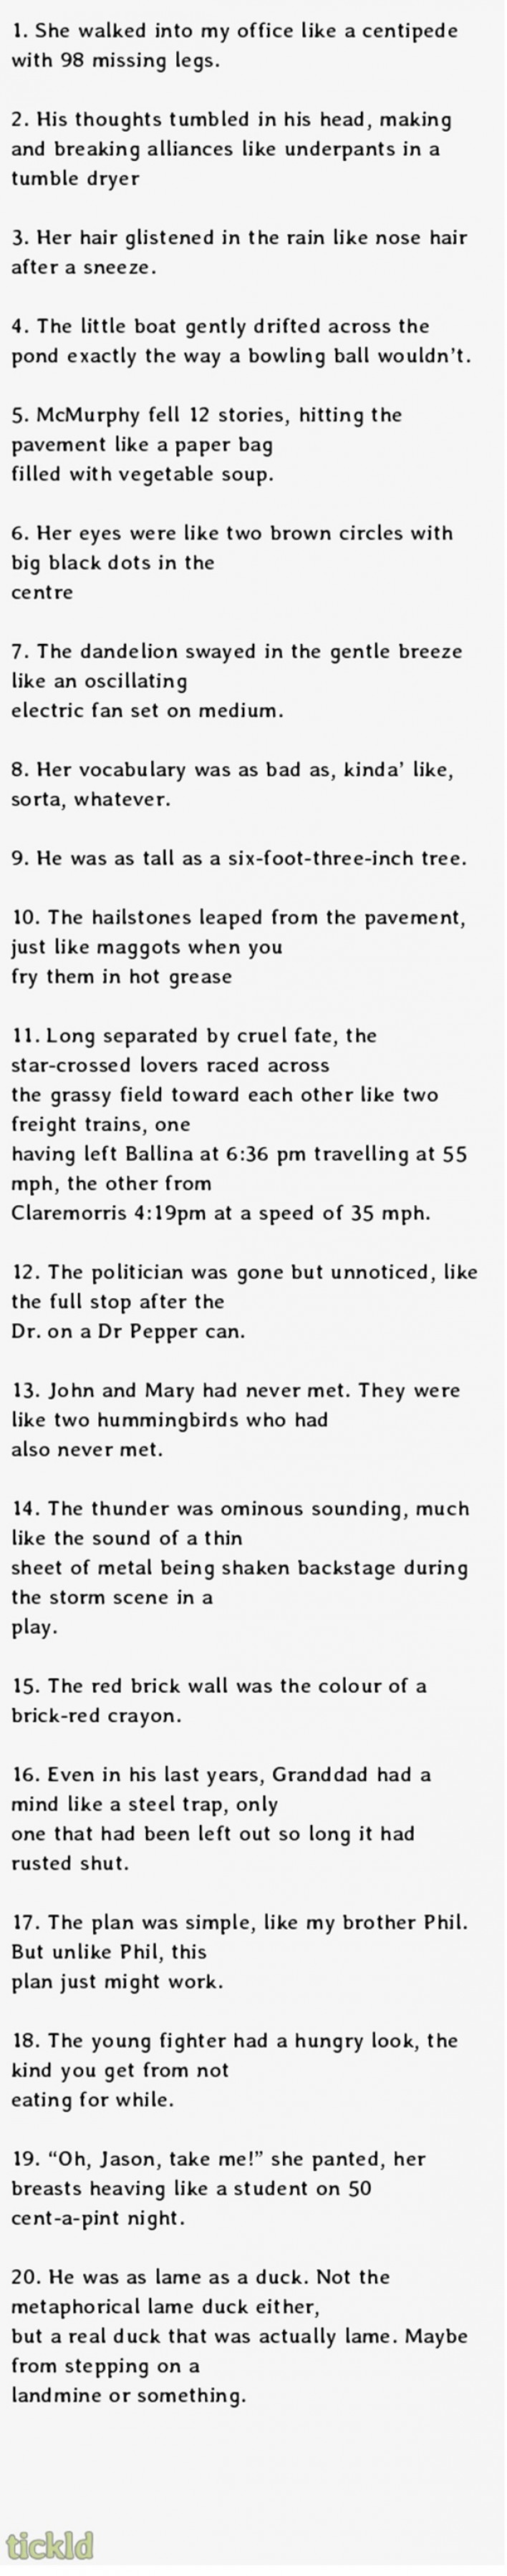 Real English Exam Answers. Hilarious. This is the kind of stuff that goes through my head